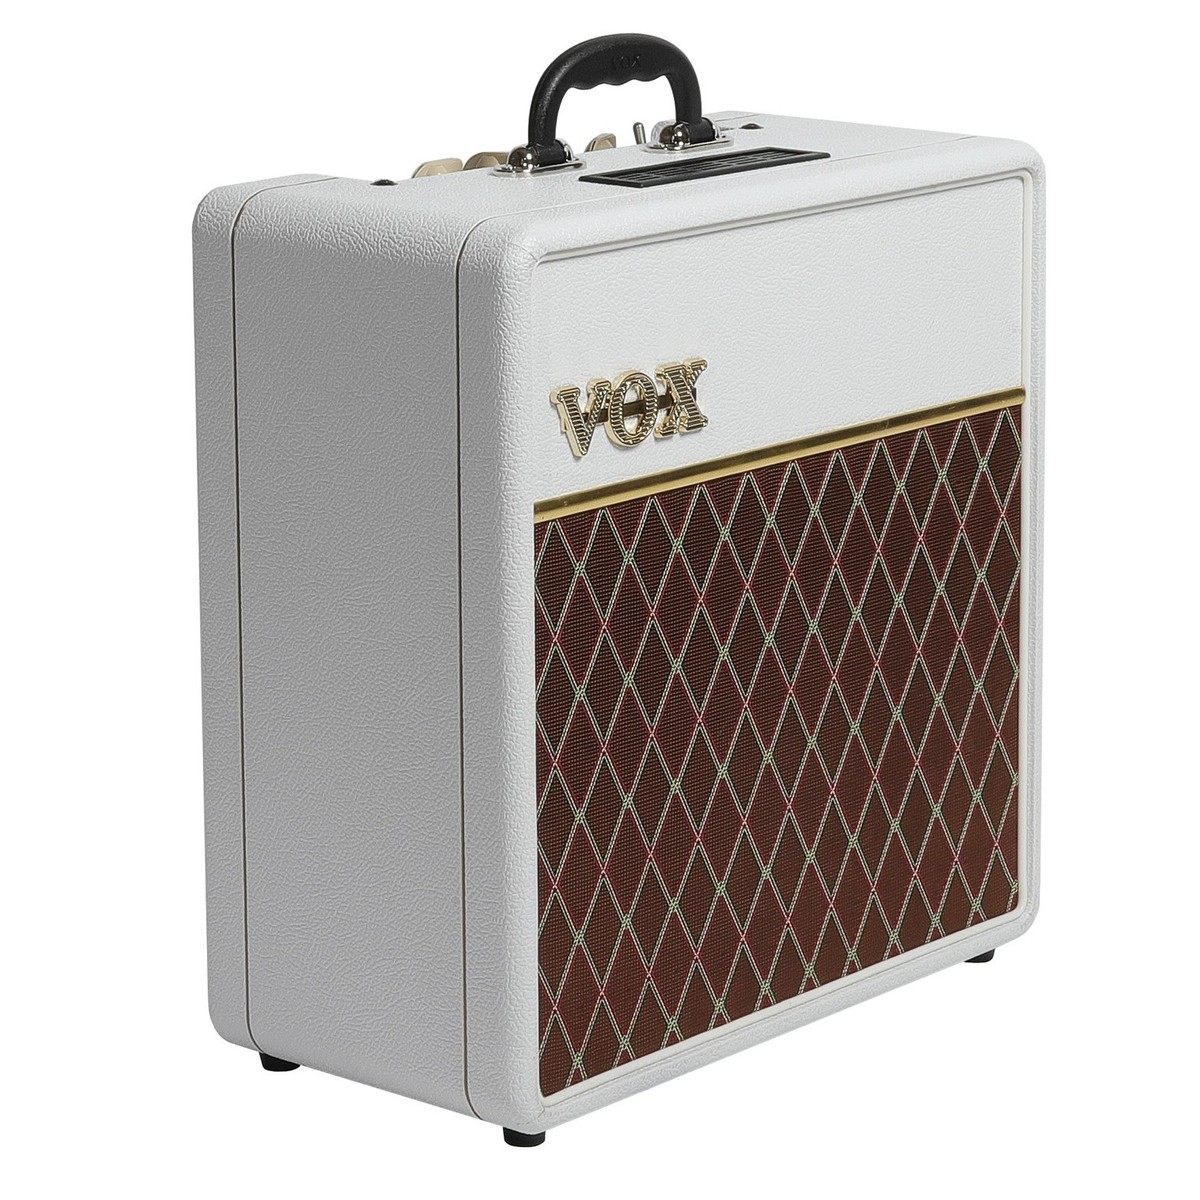 vox ac4c1 12 limited edition guitar combo amp white bronco at. Black Bedroom Furniture Sets. Home Design Ideas